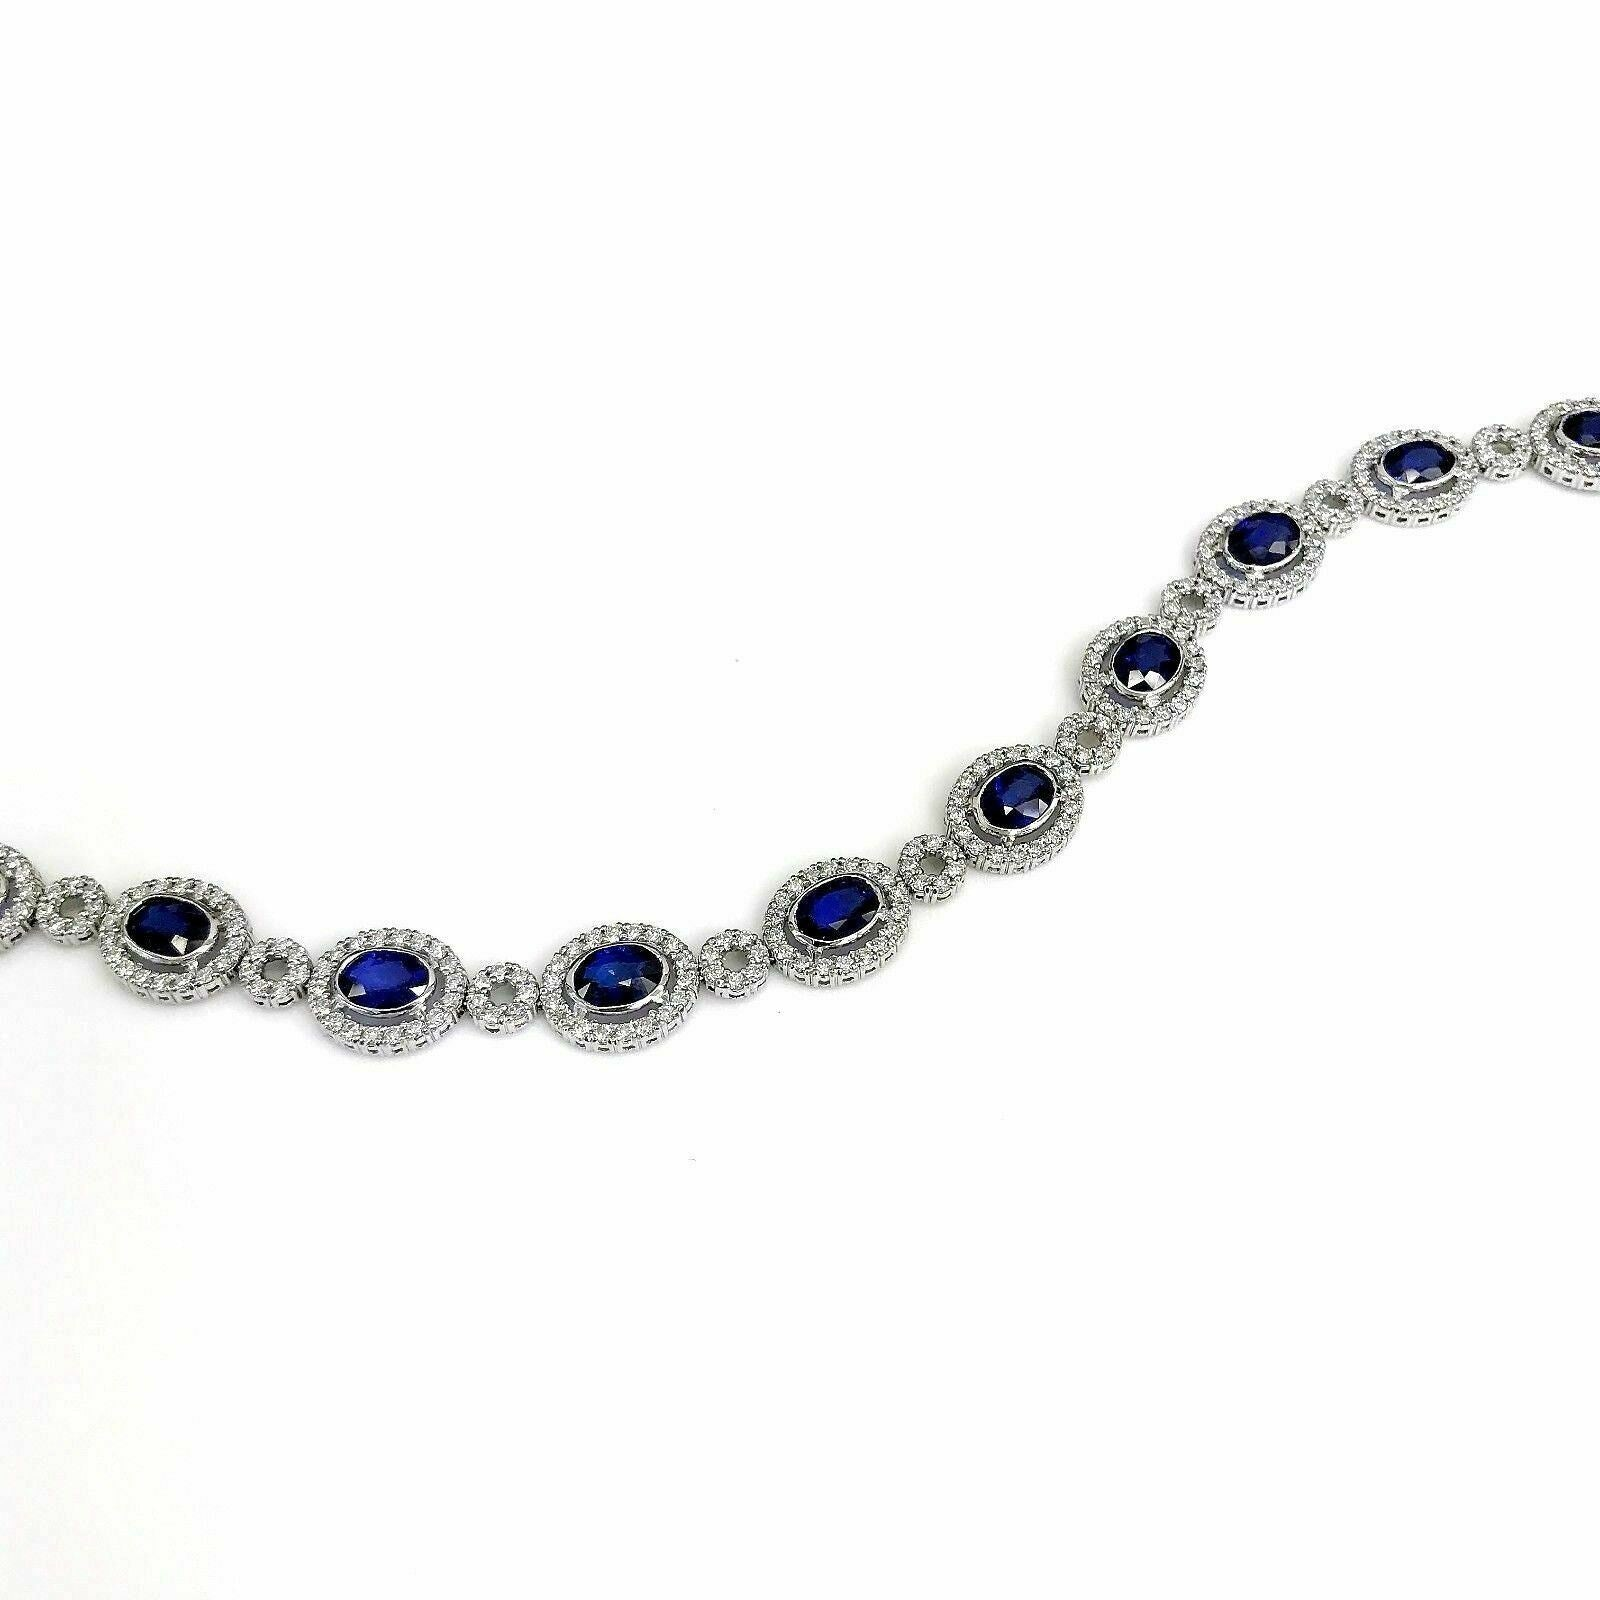 11.91 Carats Blue Sapphire and Diamond Tennis Bracelet 14K White Gold